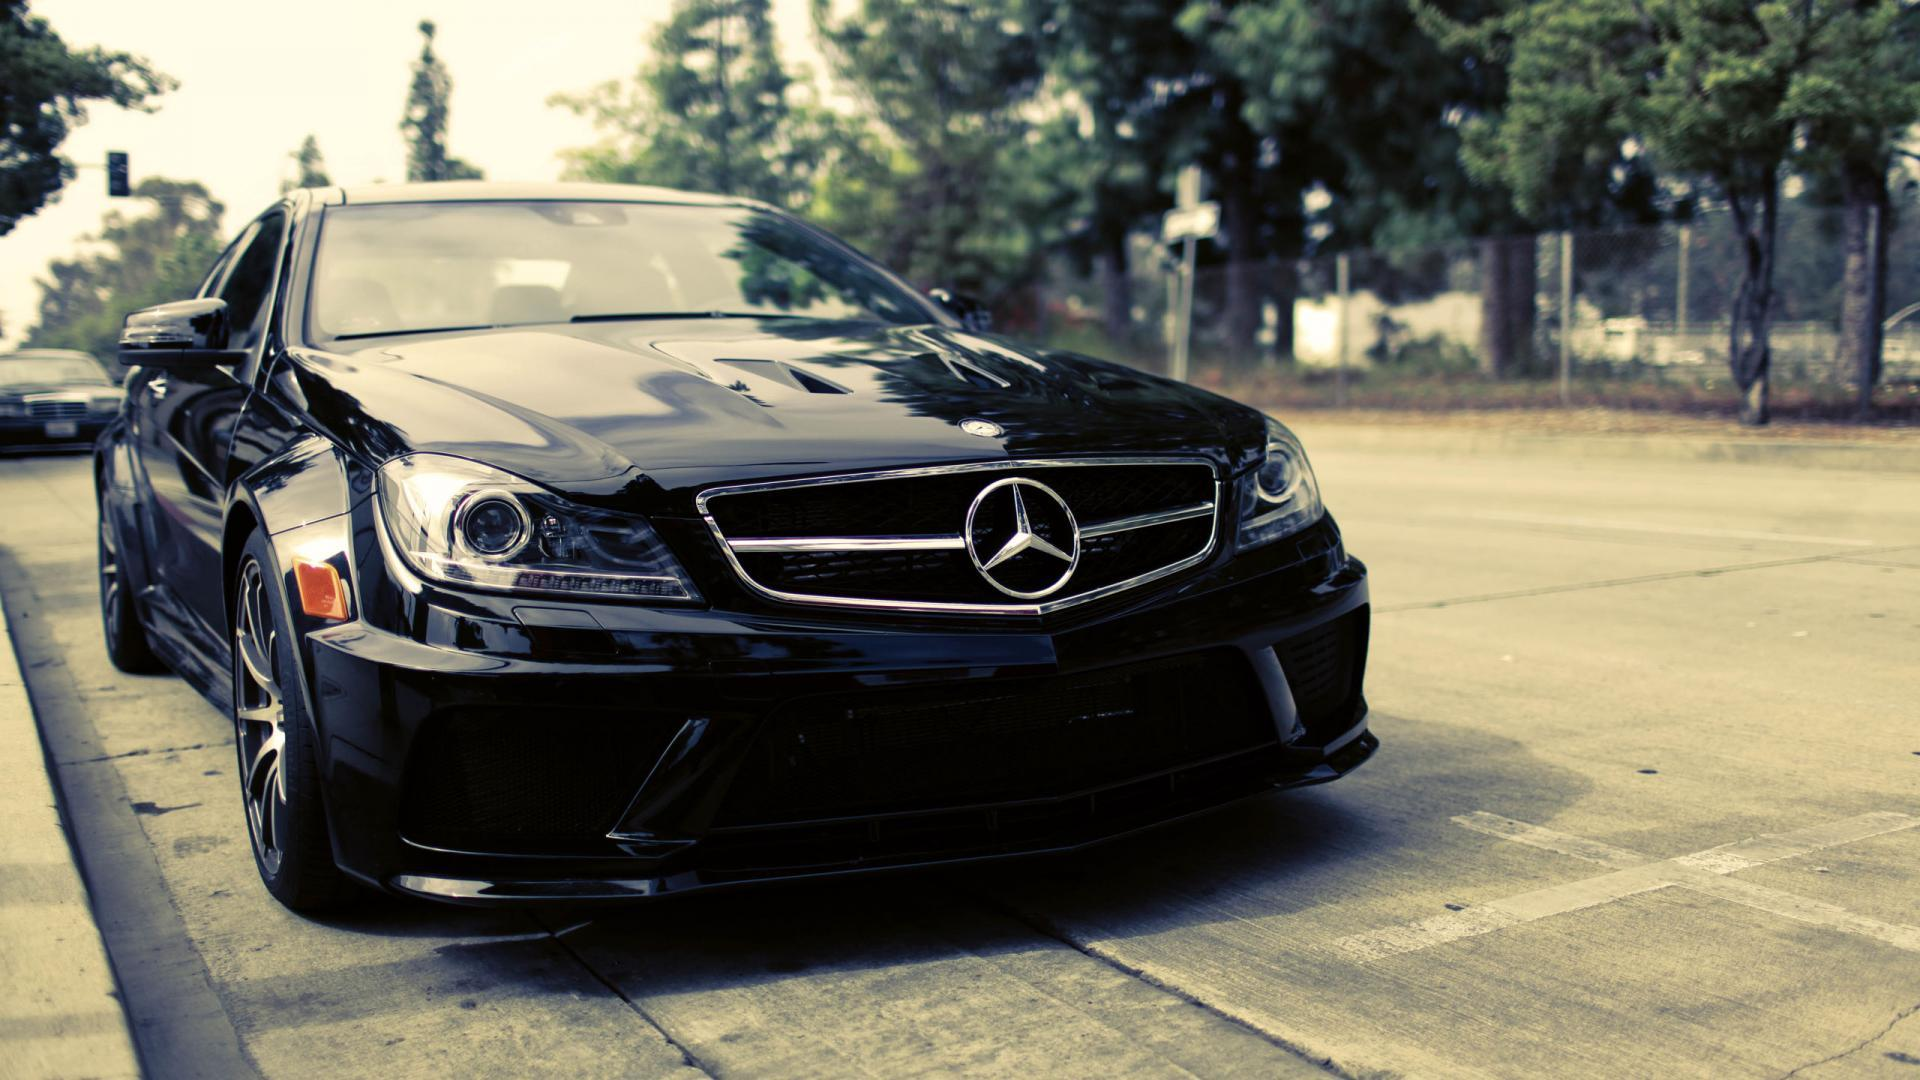 Black Mercedes Benz Hd Wallpapers